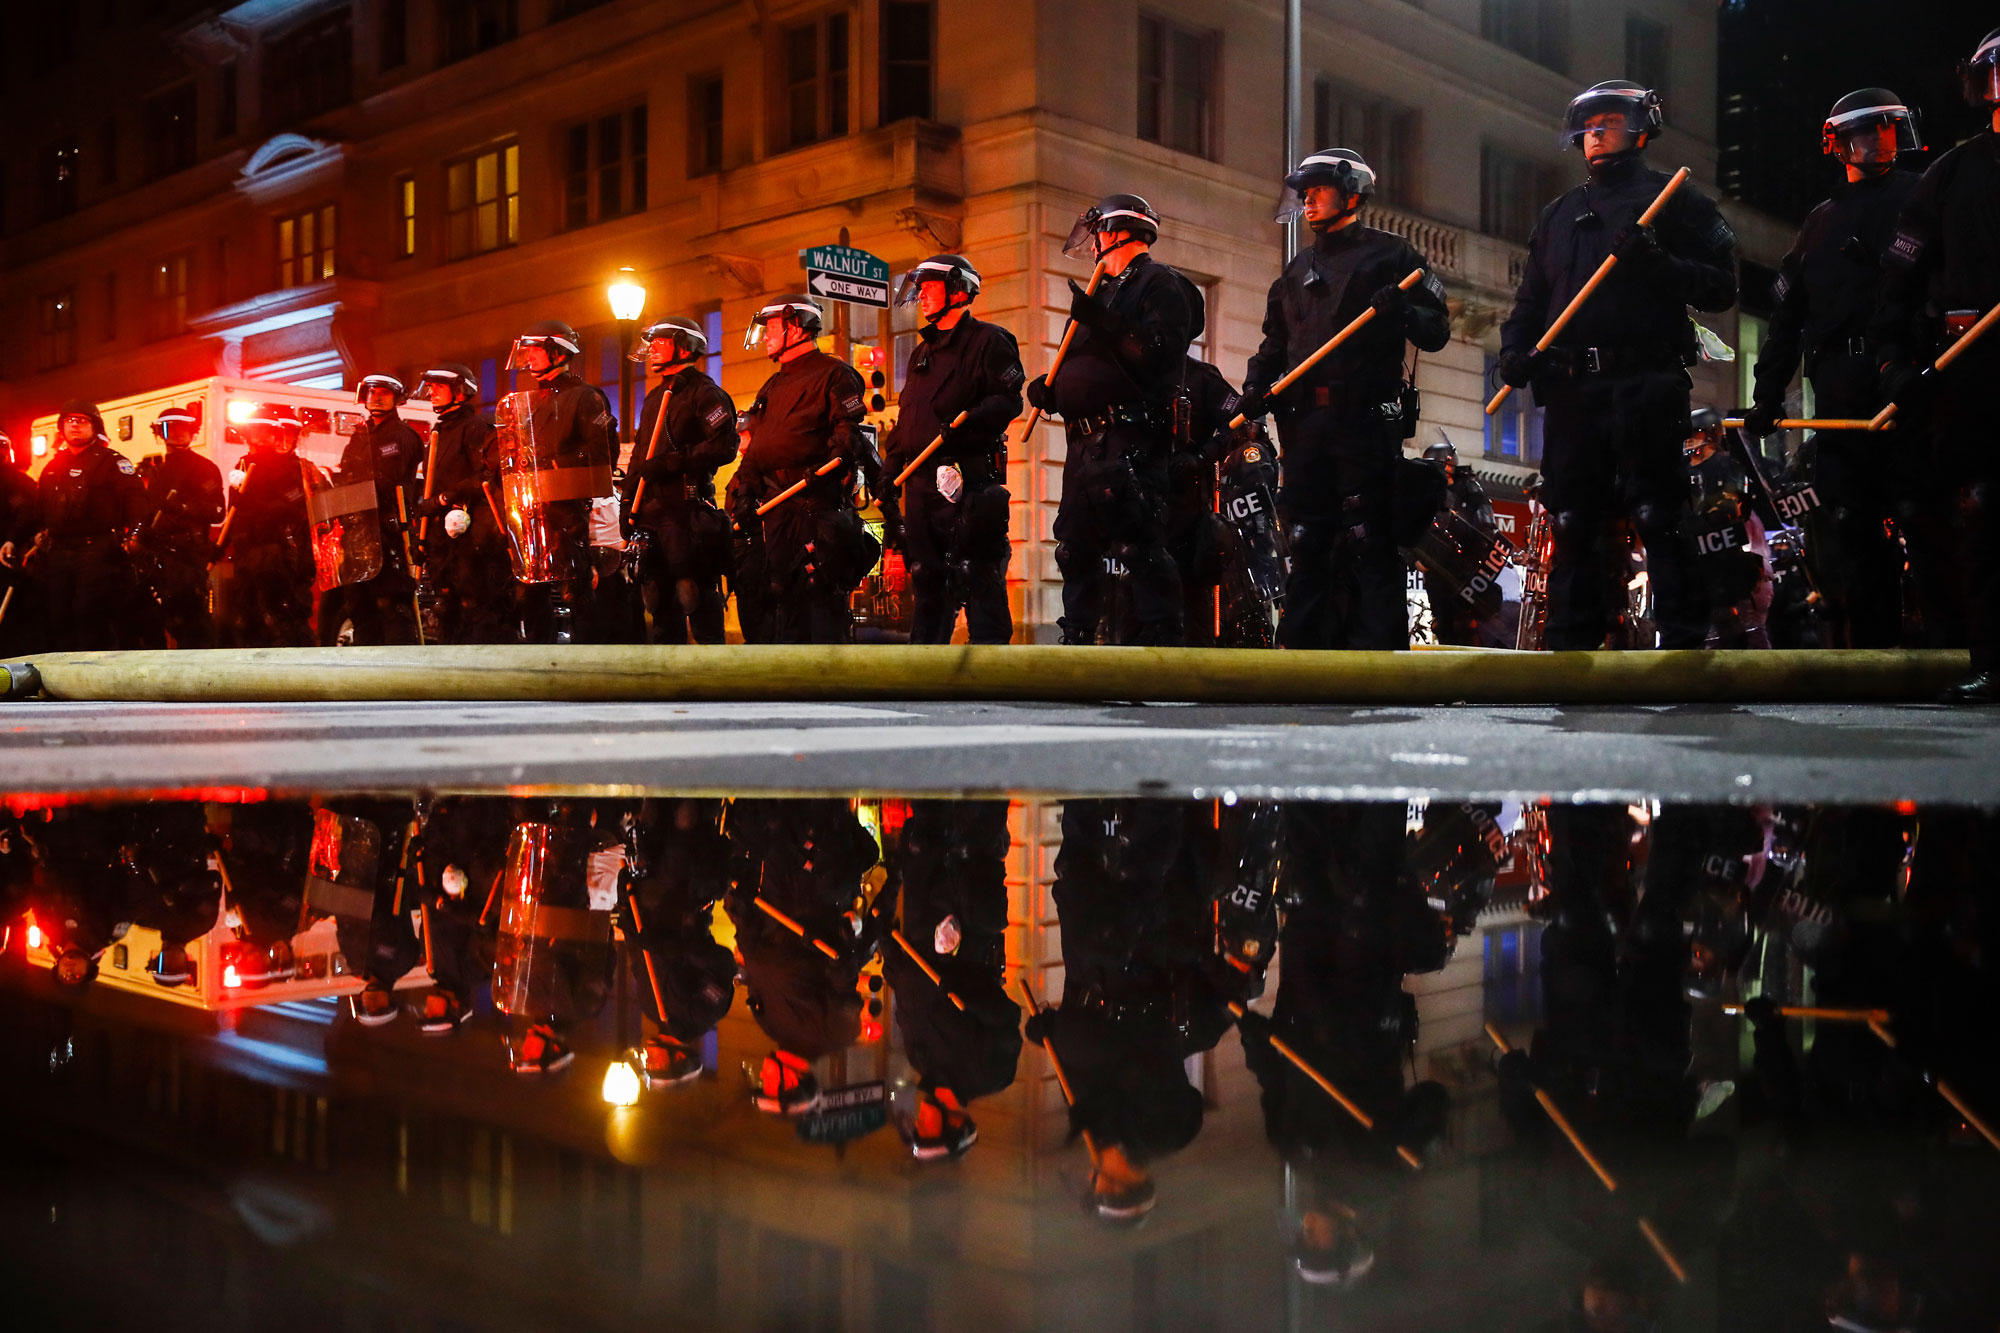 After reviewing video, prosecutors charge police inspector instead of protester